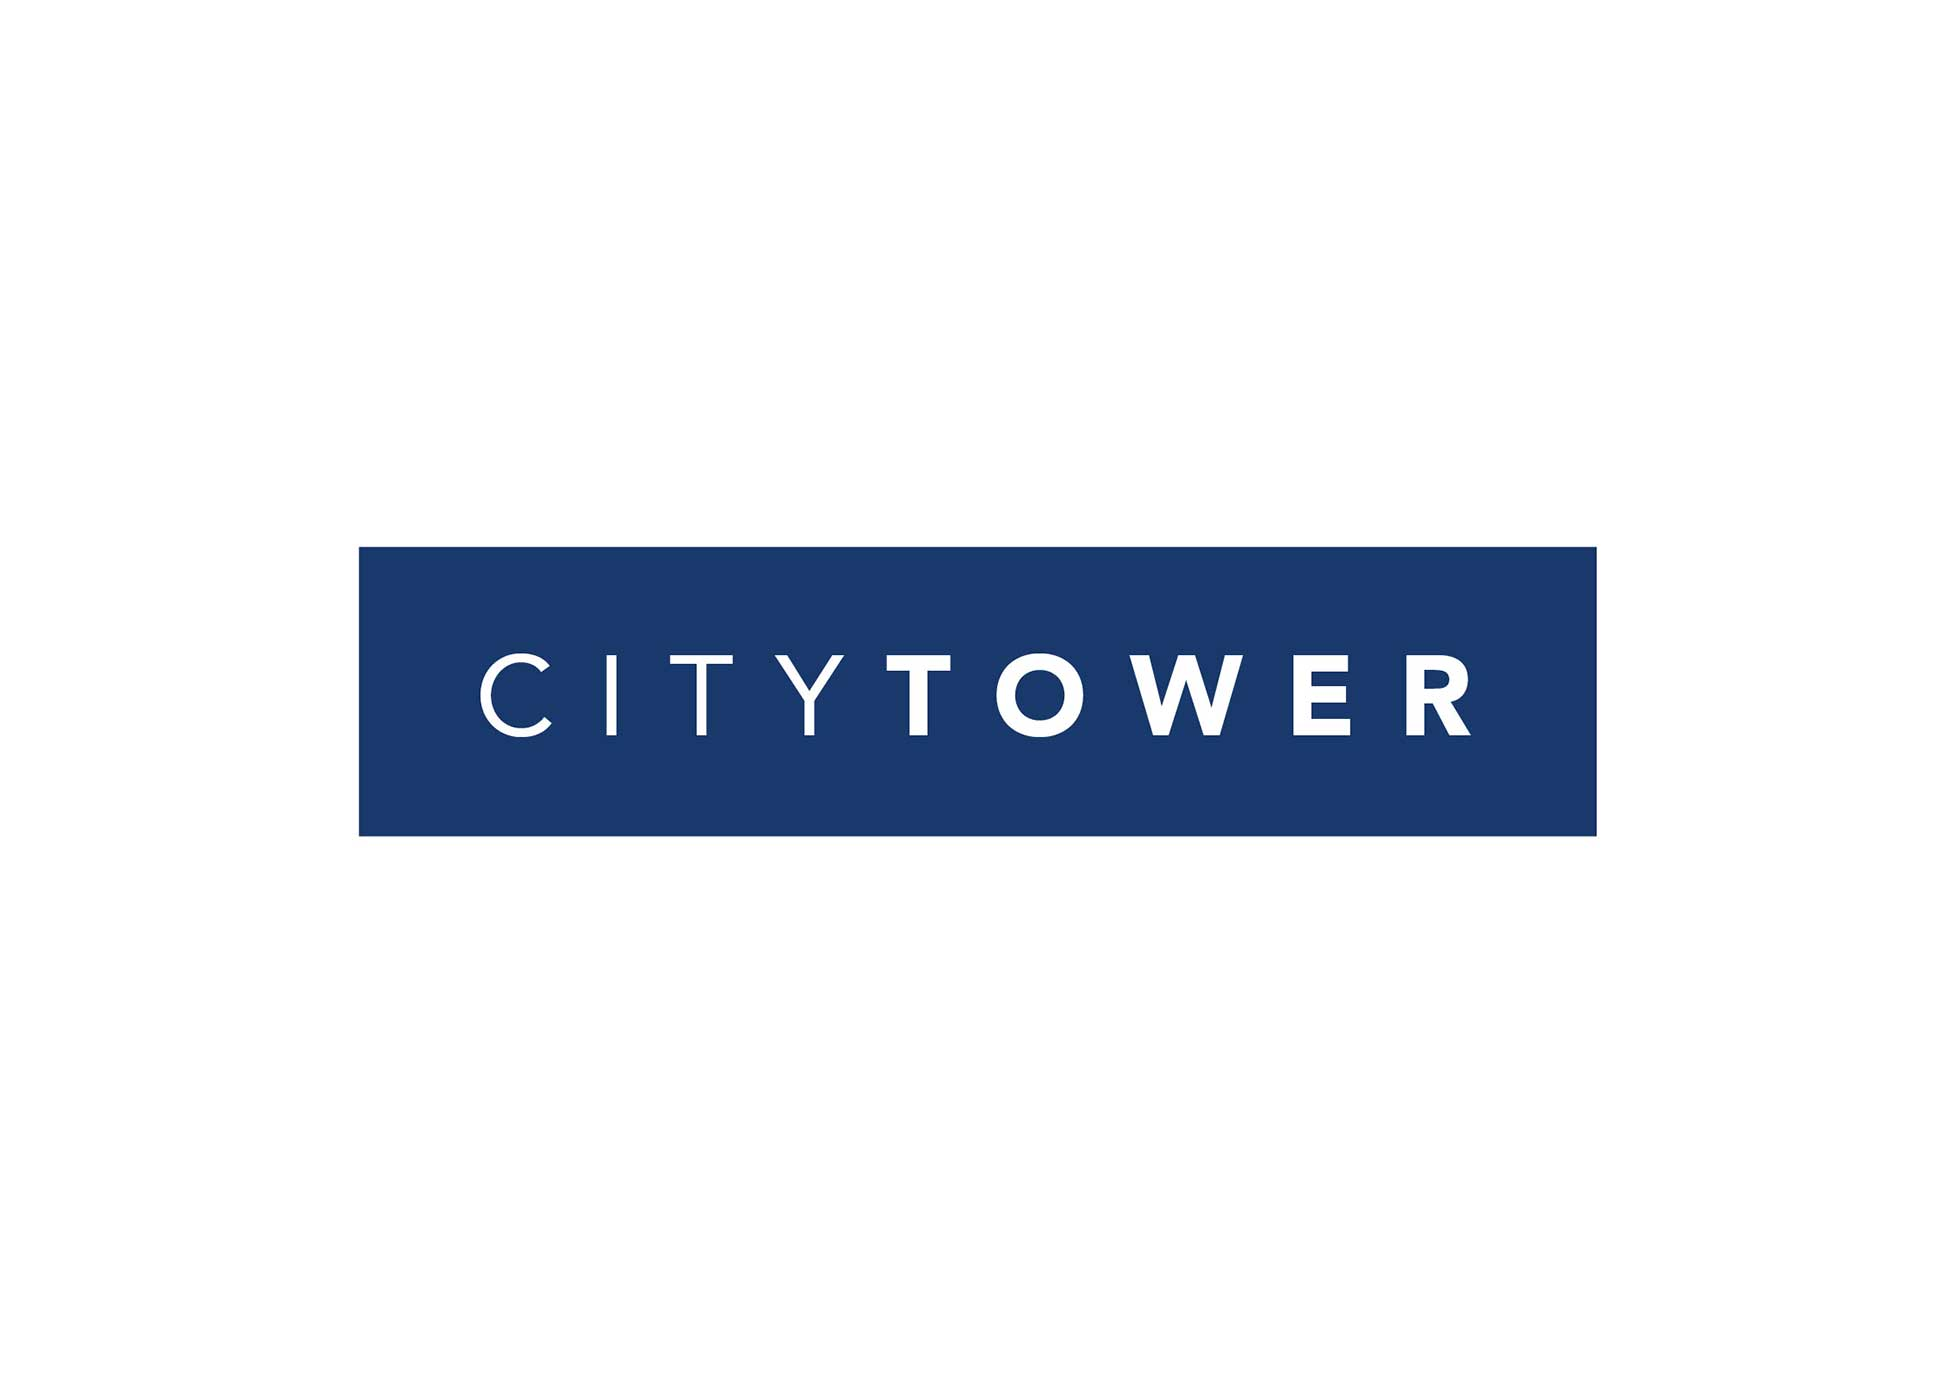 City Tower logo